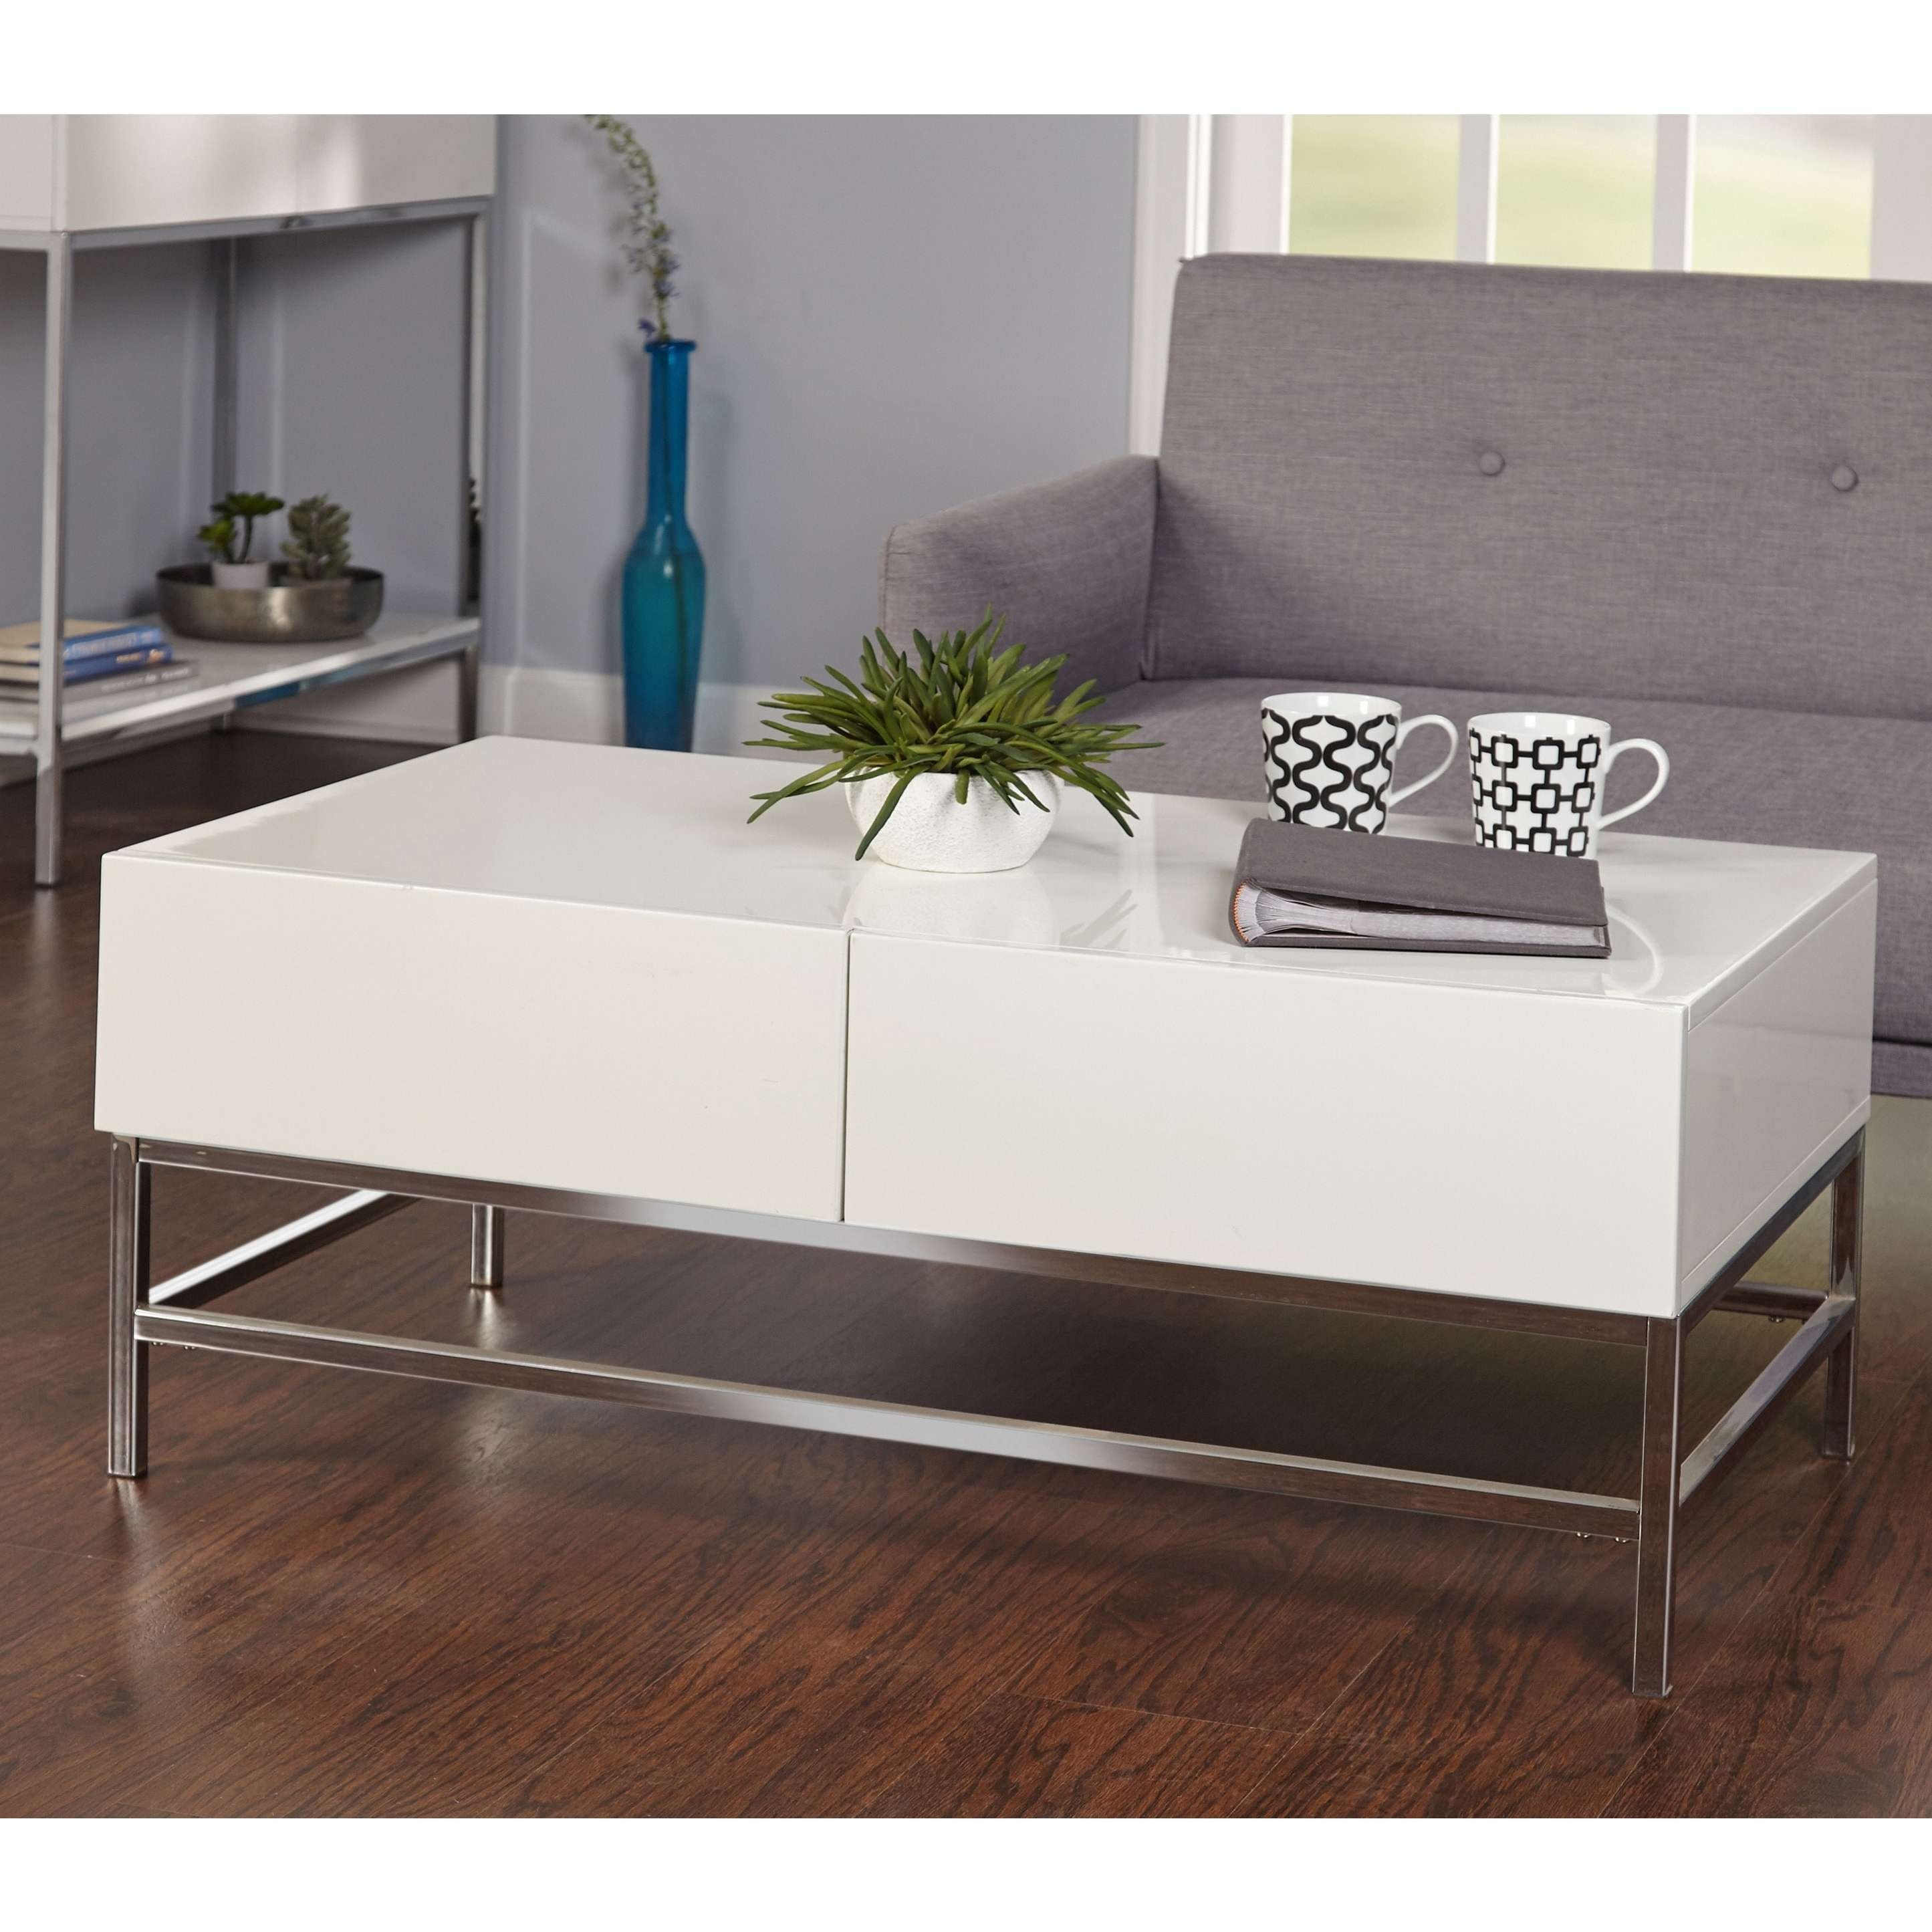 2017 Gloss Coffee Tables Pertaining To Simple Living White Metal High Gloss Coffee Table – Free Shipping (View 3 of 20)